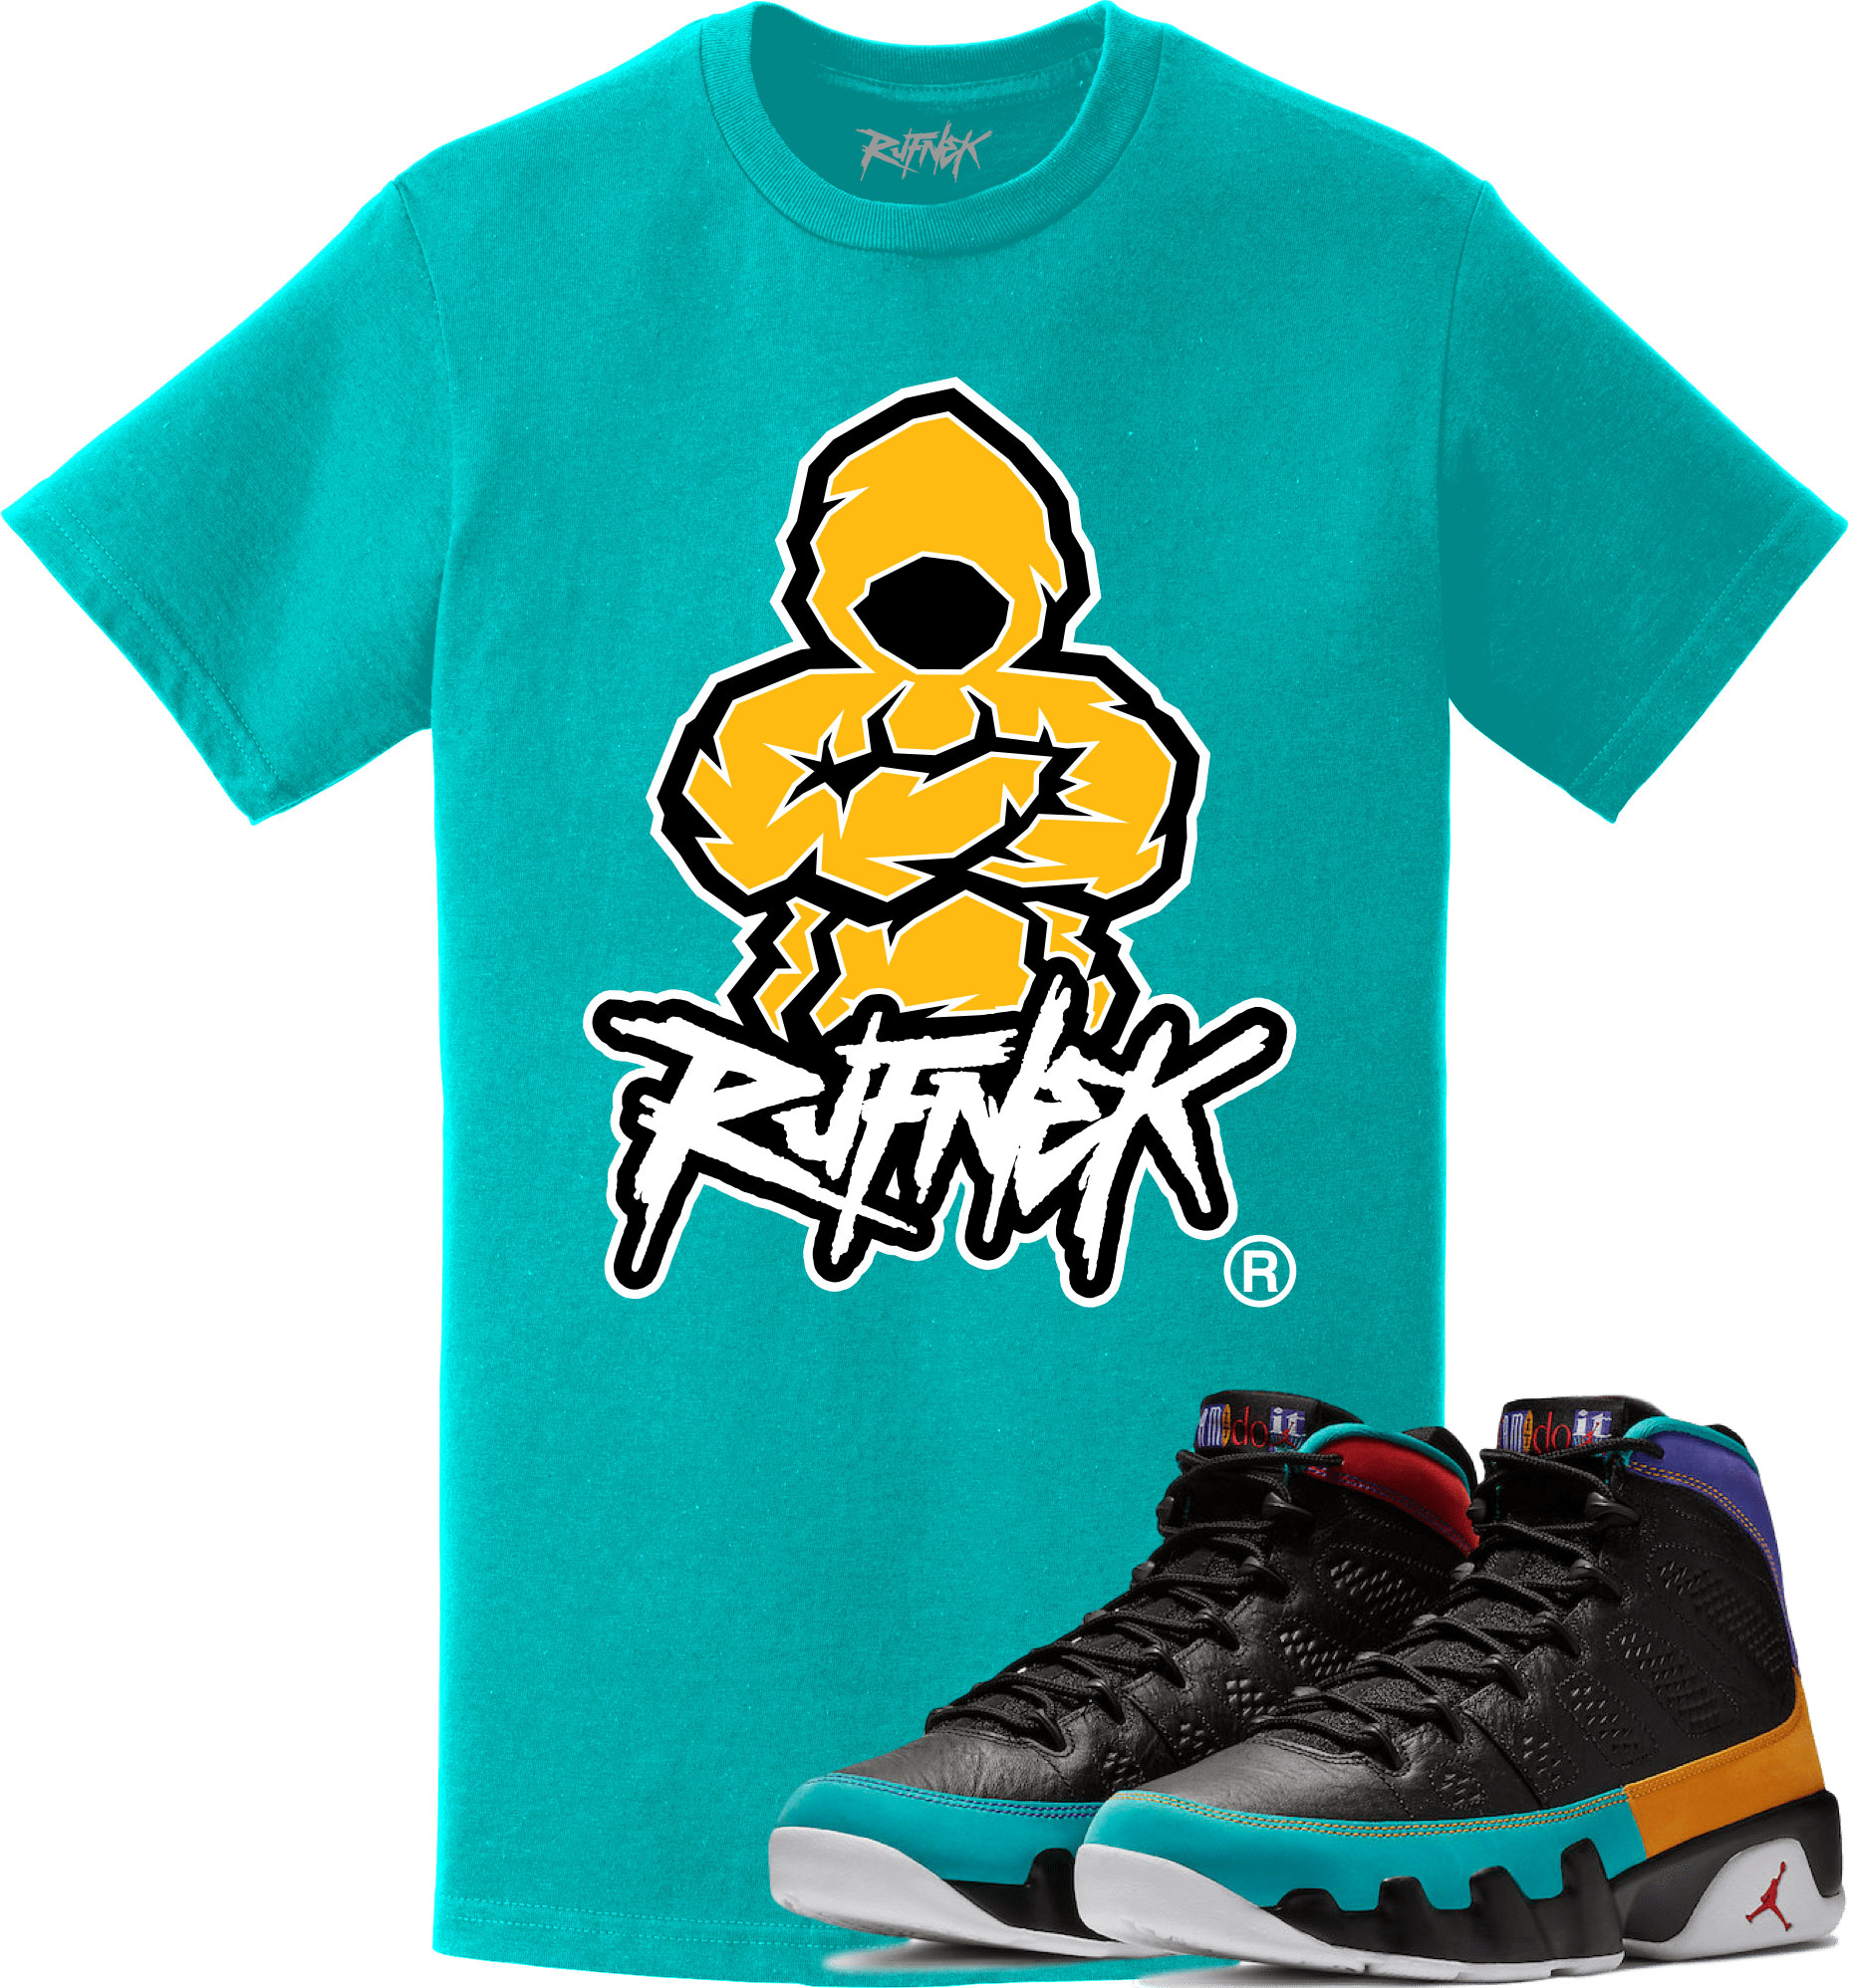 jordan-9-dream-it-do-it-sneaker-match-tee-shirt-3